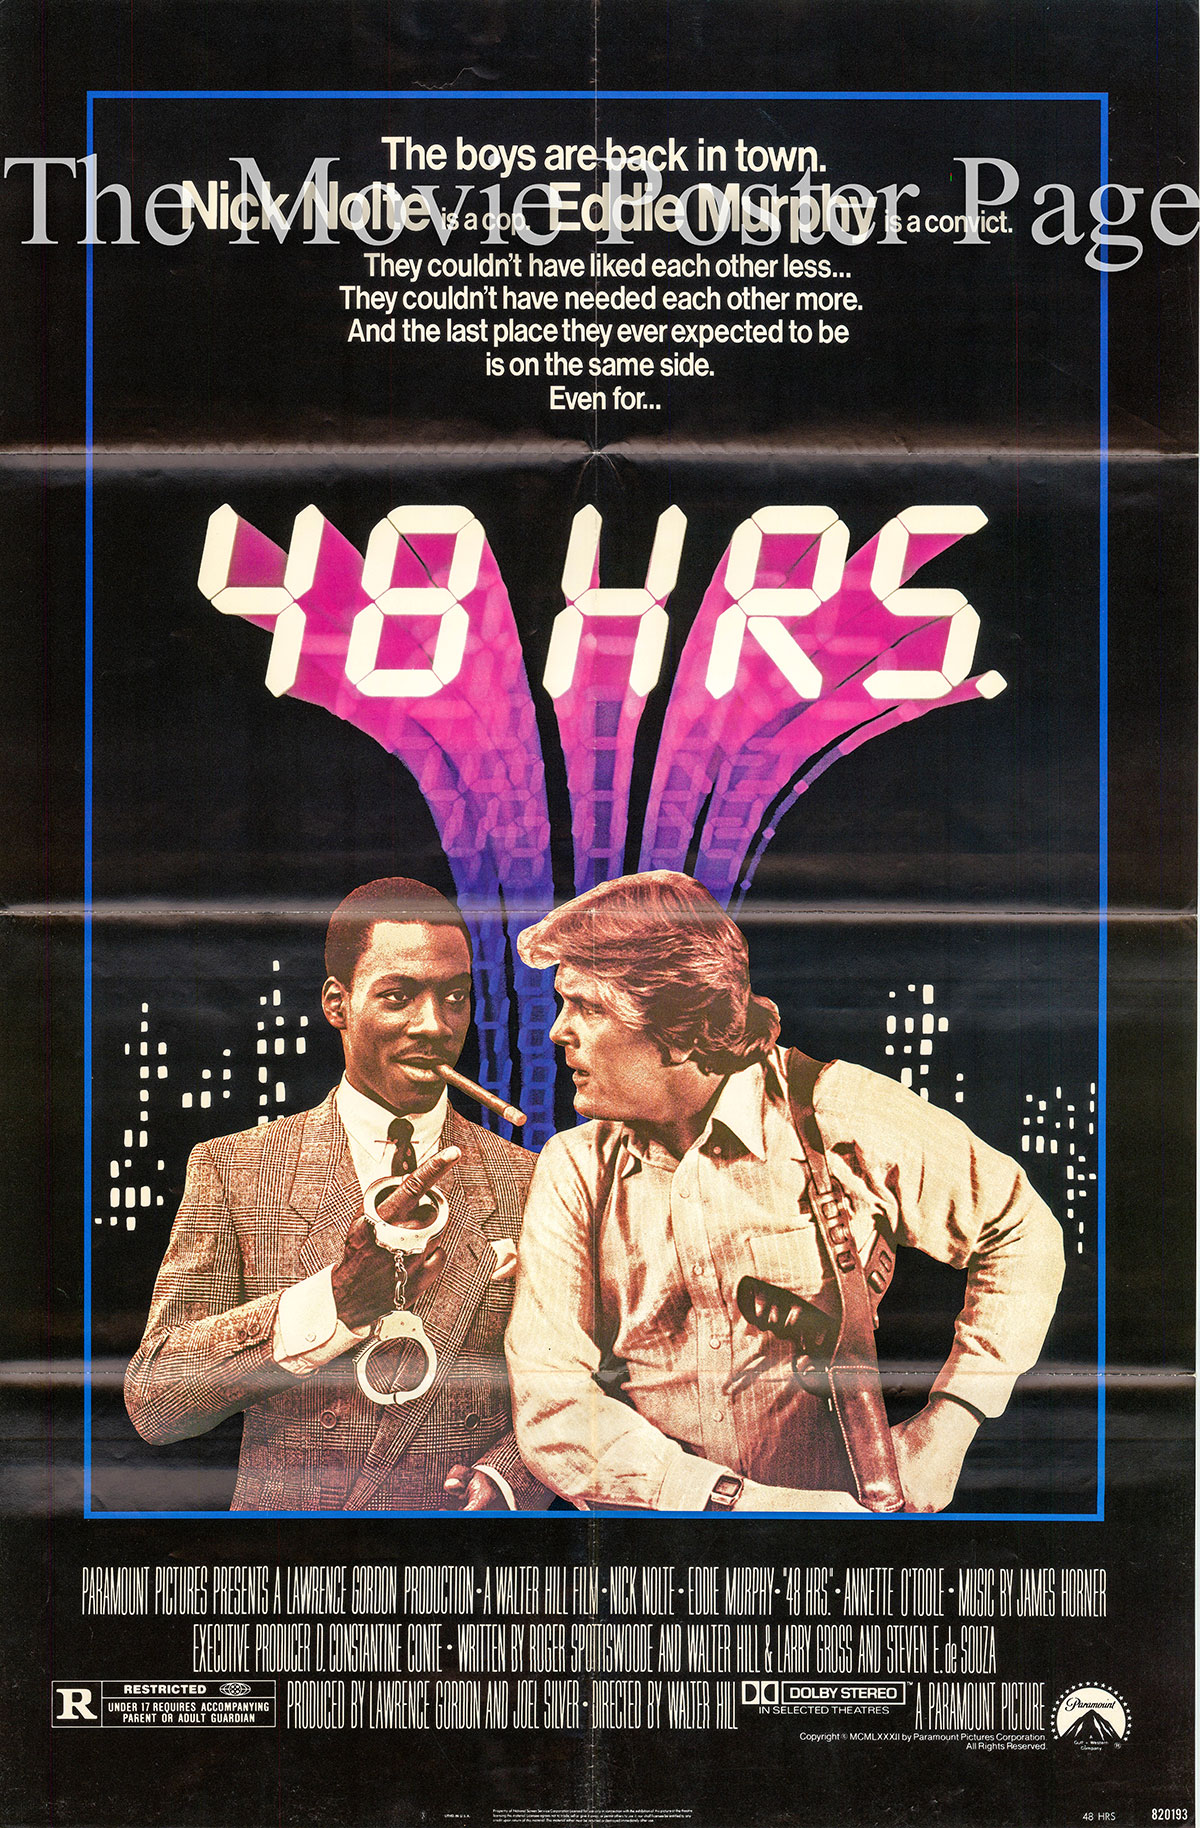 Pictured is a US one-sheet for the 1982 Walter Hill film 48 Hours starring Nick Nolte and Eddie Murphy.